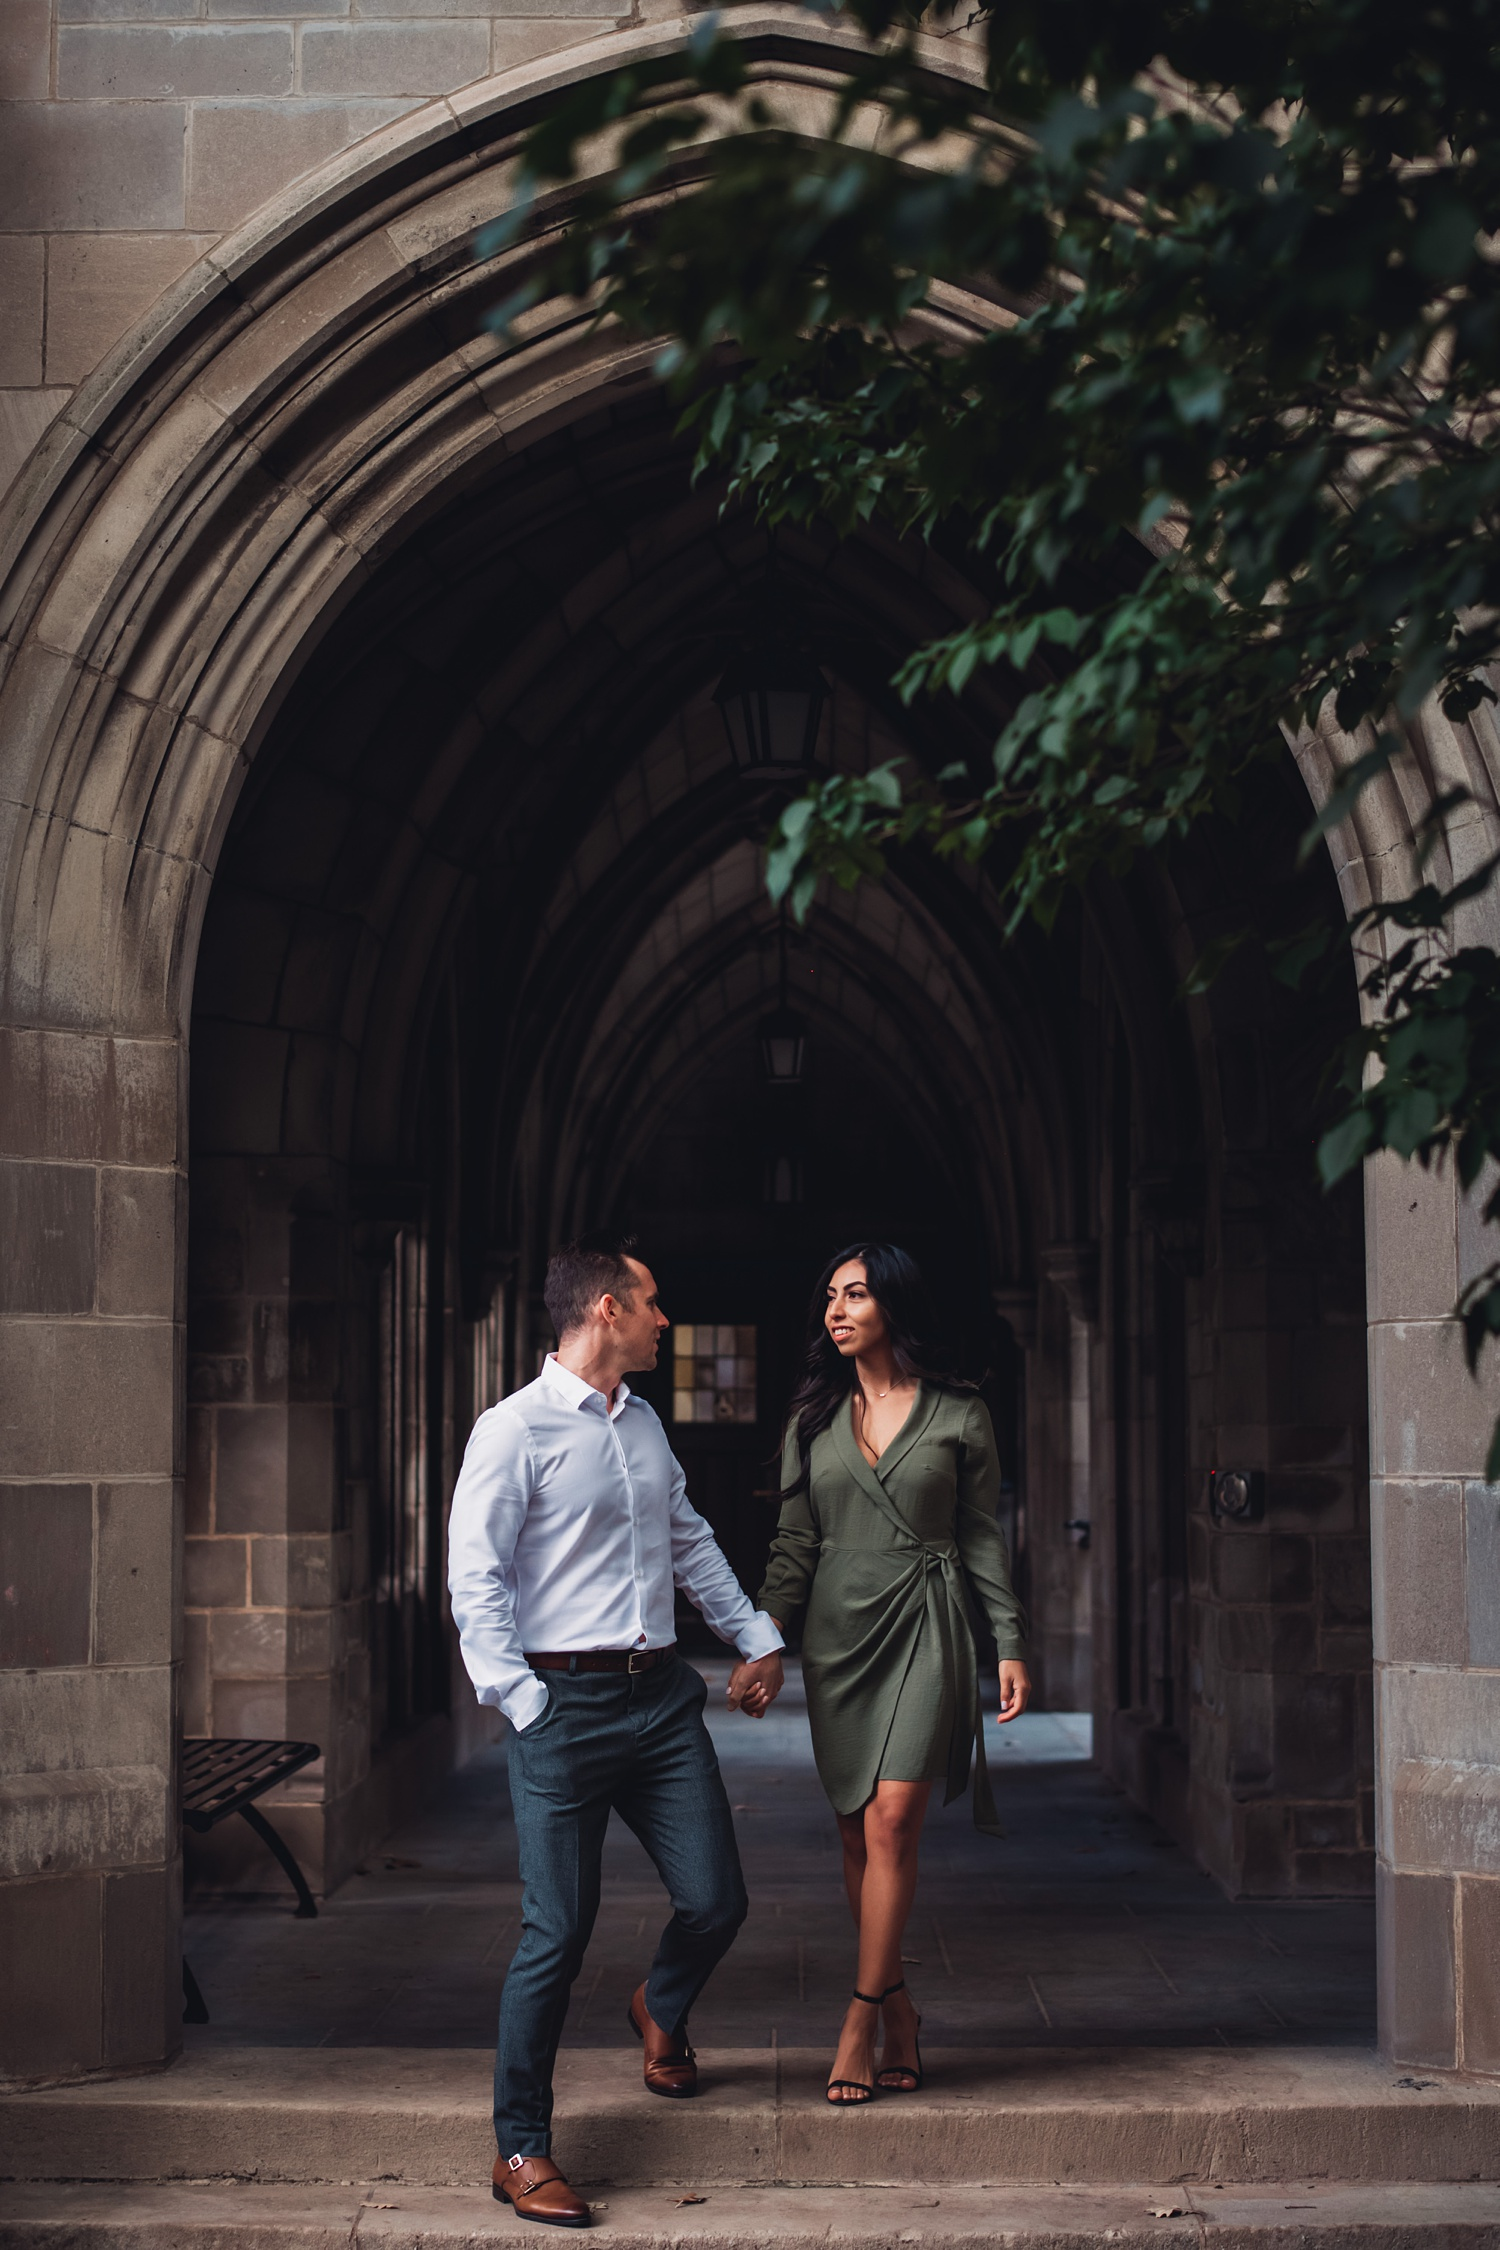 University of Chicago Engagement - The Adamkovi - gothic arches, architecture